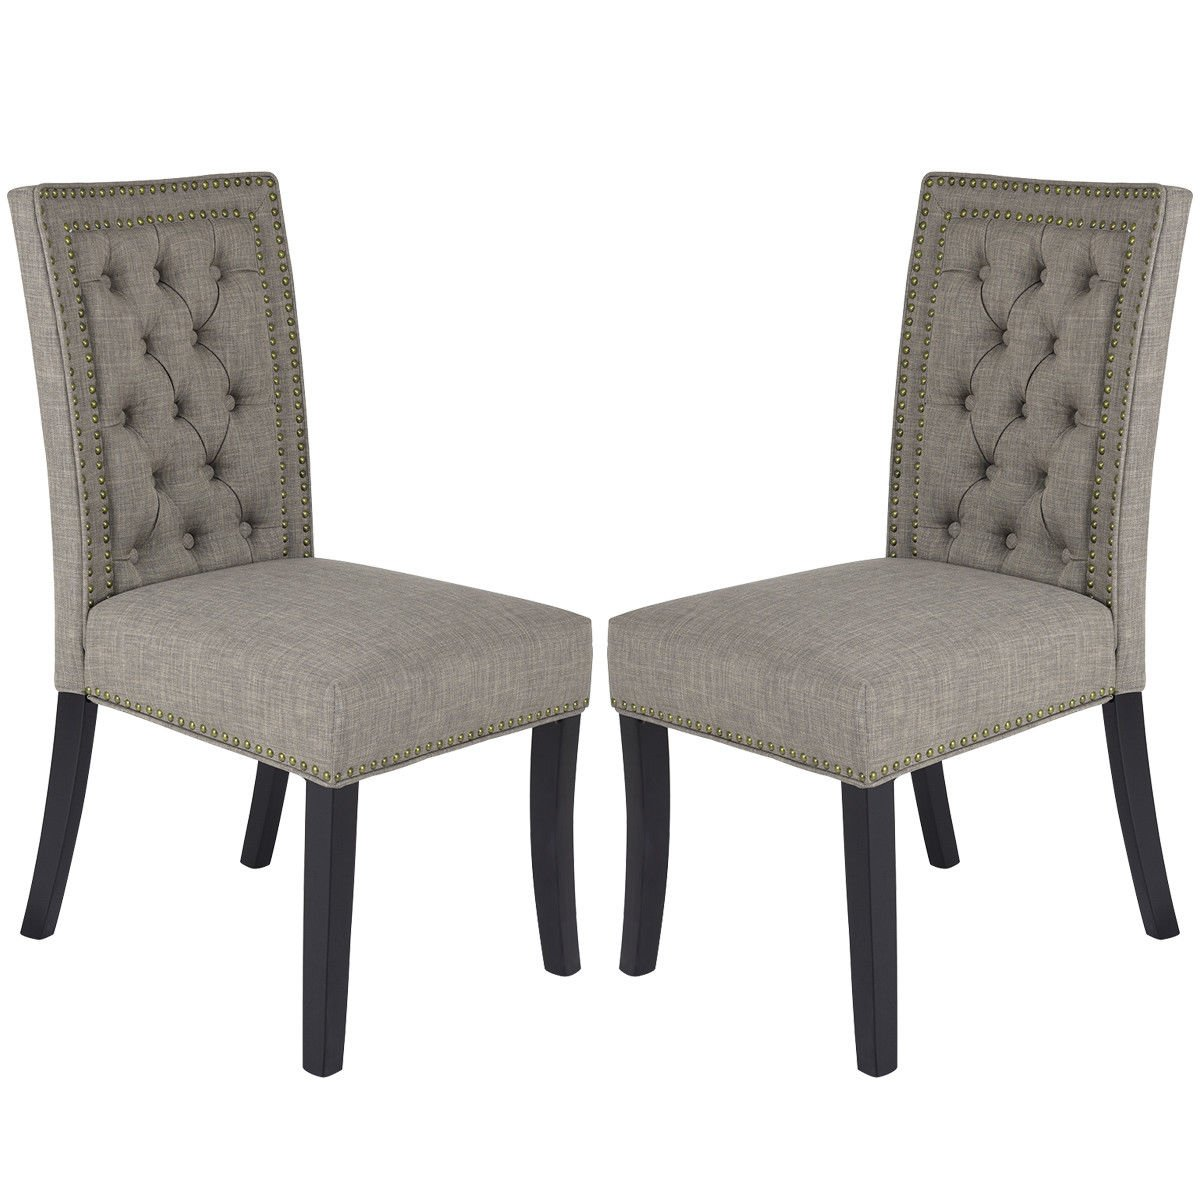 Fabric Dining Chairs with Rubber Wood Legs Home Kitchen Furniture Brown Set of 2